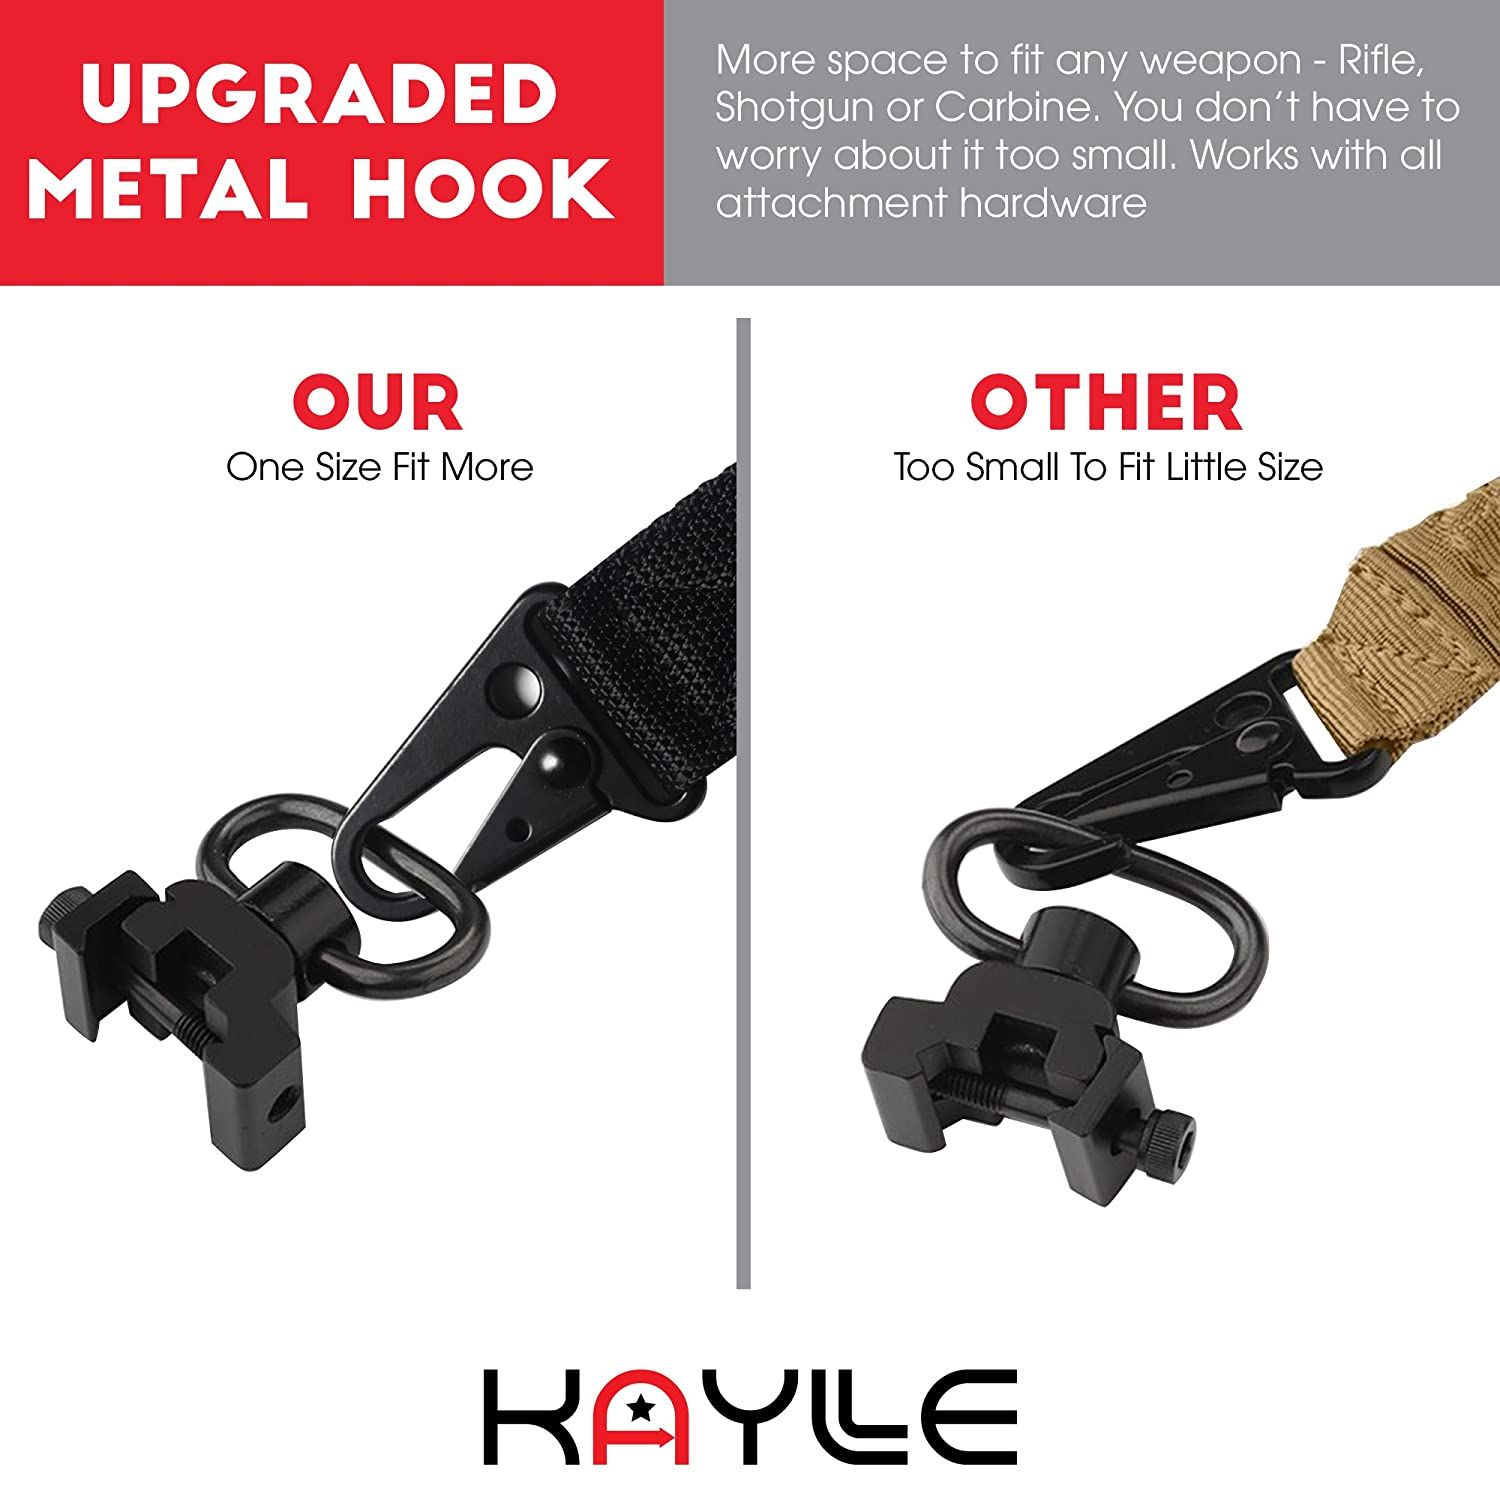 Multi Use for Tactical Hunting Shooting /& Emergency Situations Premium Shotgun Sling with Upgraded Metal Hook Fits Any Weapon KAYLLE 2-Point Rifle Sling Sniper Durable /& Quick Length Adjust